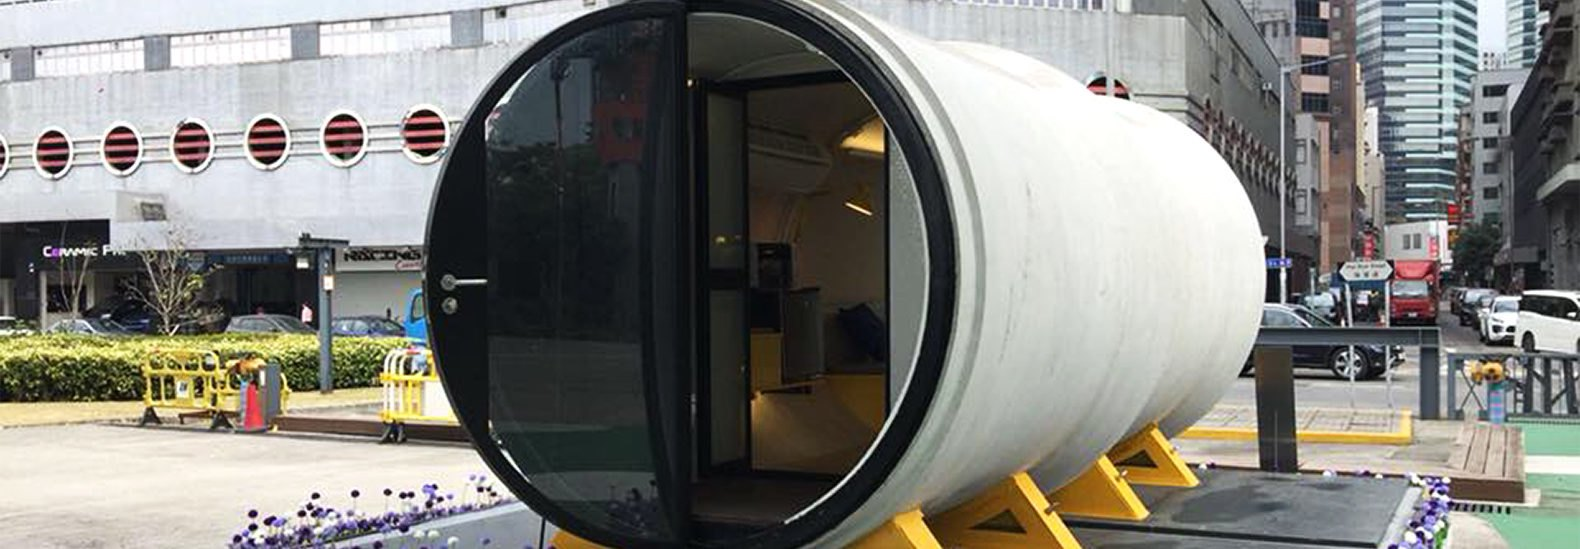 Tiny homes made of concrete pipes could be the next big thing in